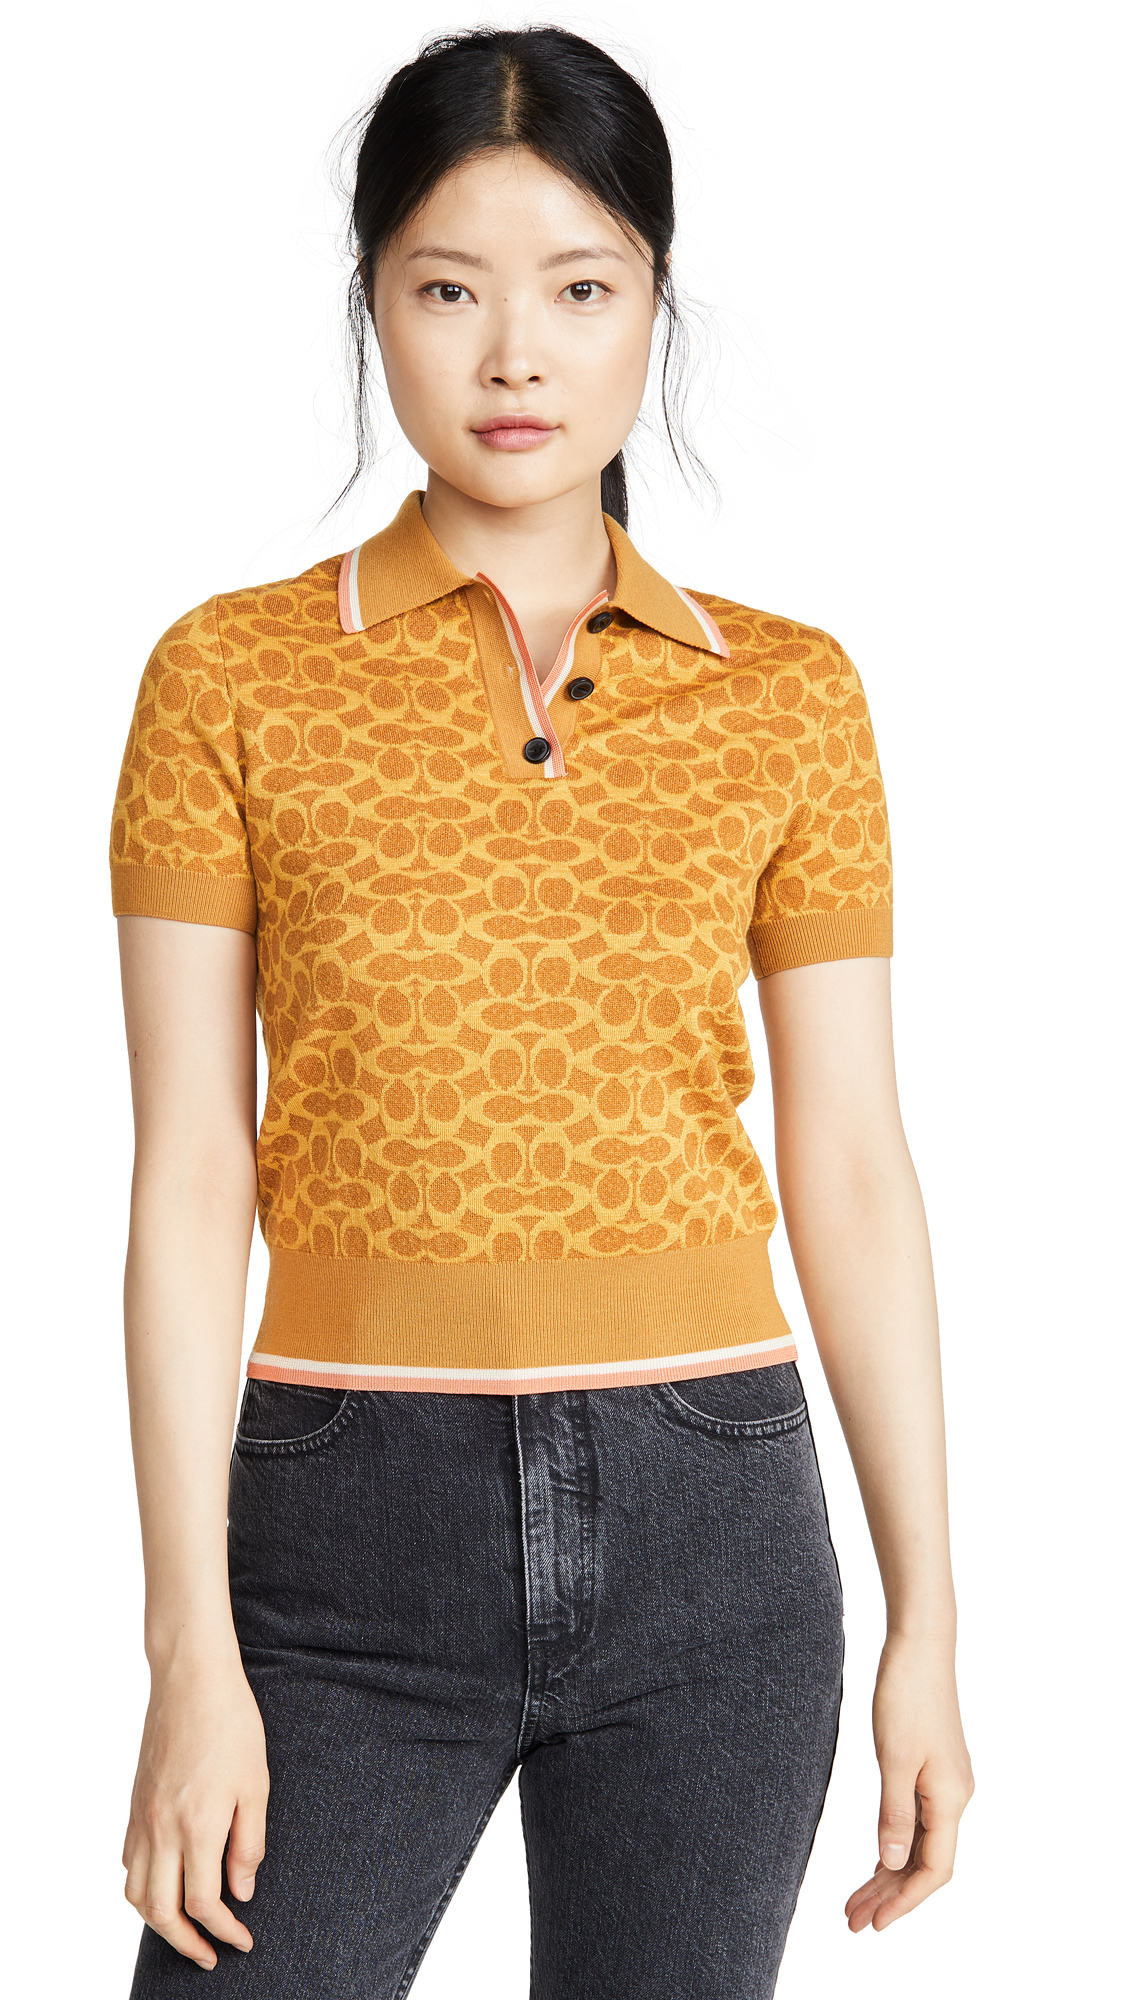 Coach 1941 Fitted Polo Top - Yellow